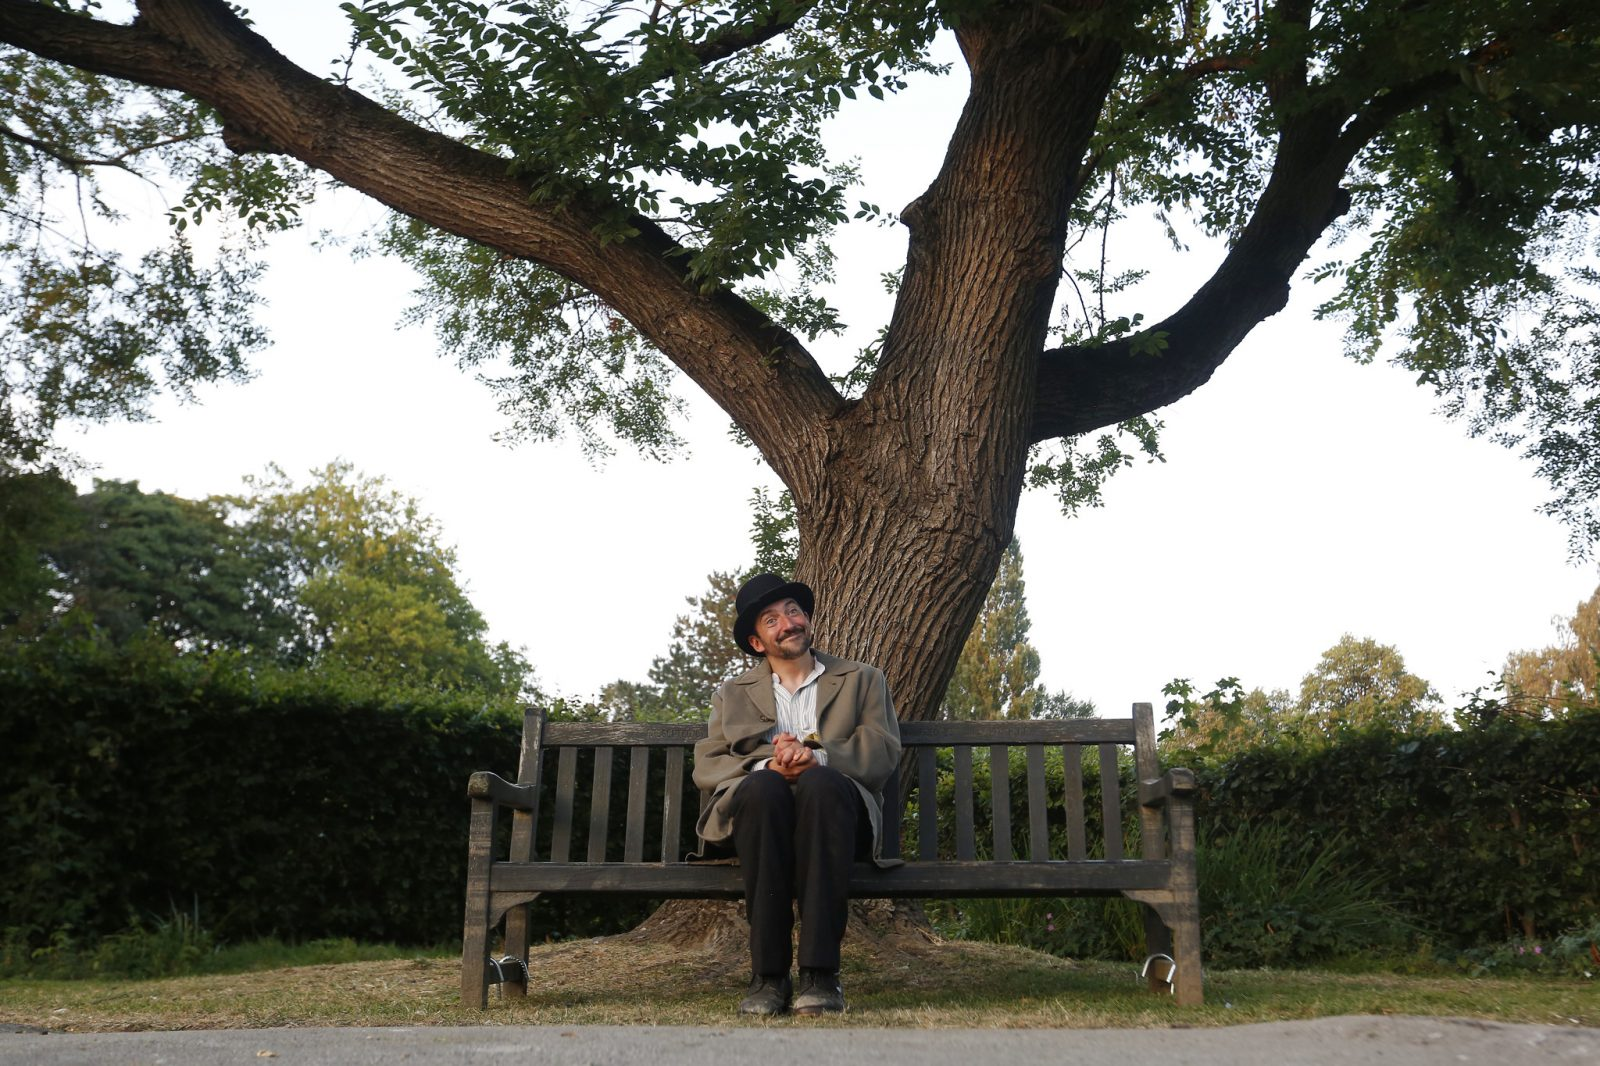 actor chris hannon in long tan coat and black hat, sat on park bench with legs together and head tilted to side